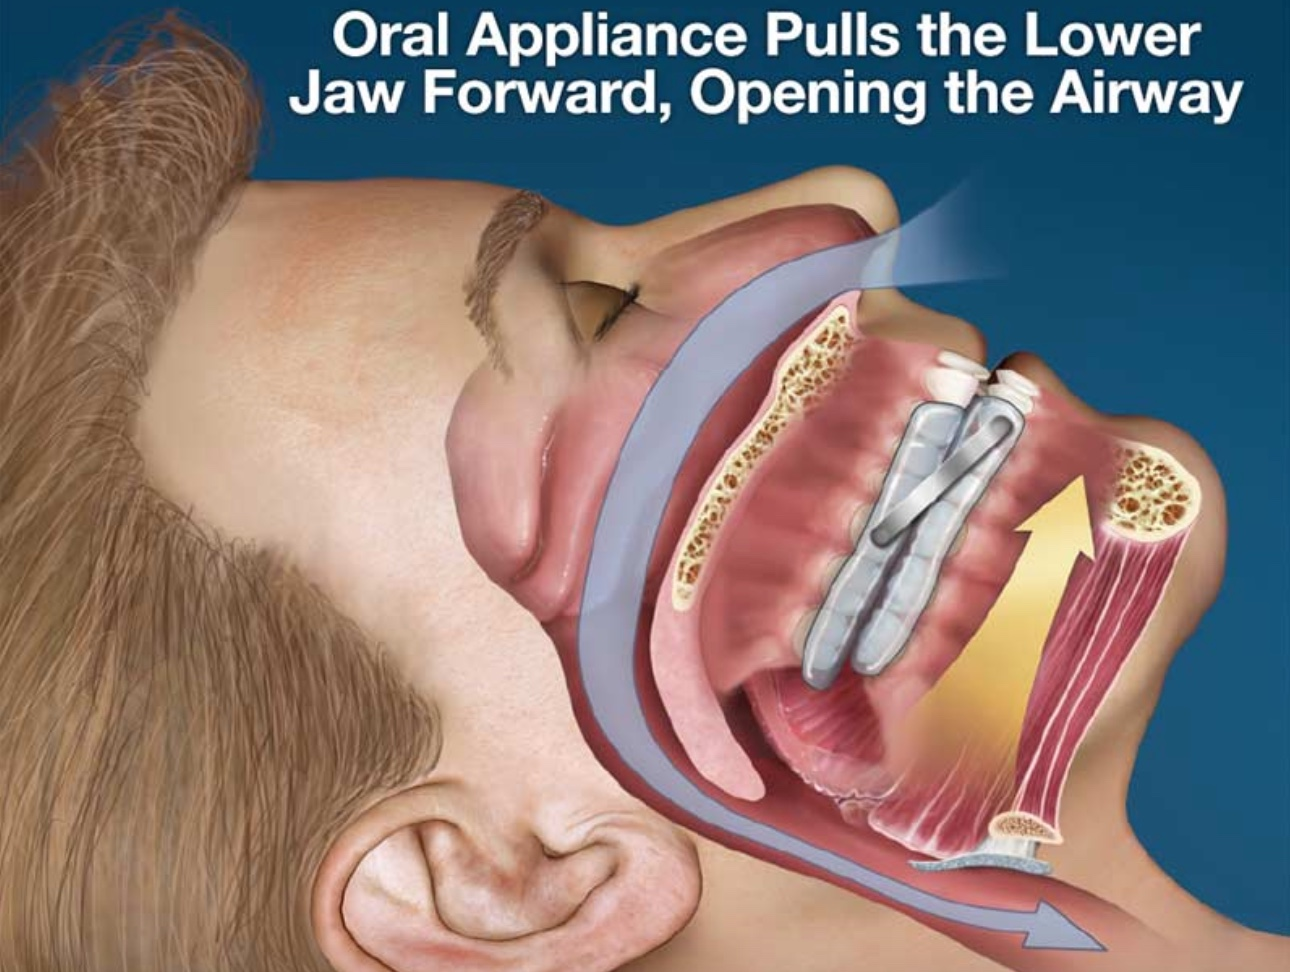 Effective  Oral  Appliance  Therapy  Treatment  For  Sleep  Apnea  By  Fuller  Sleep  And  TMJ  Solutions  Dentistry  In  Greensboro  NC